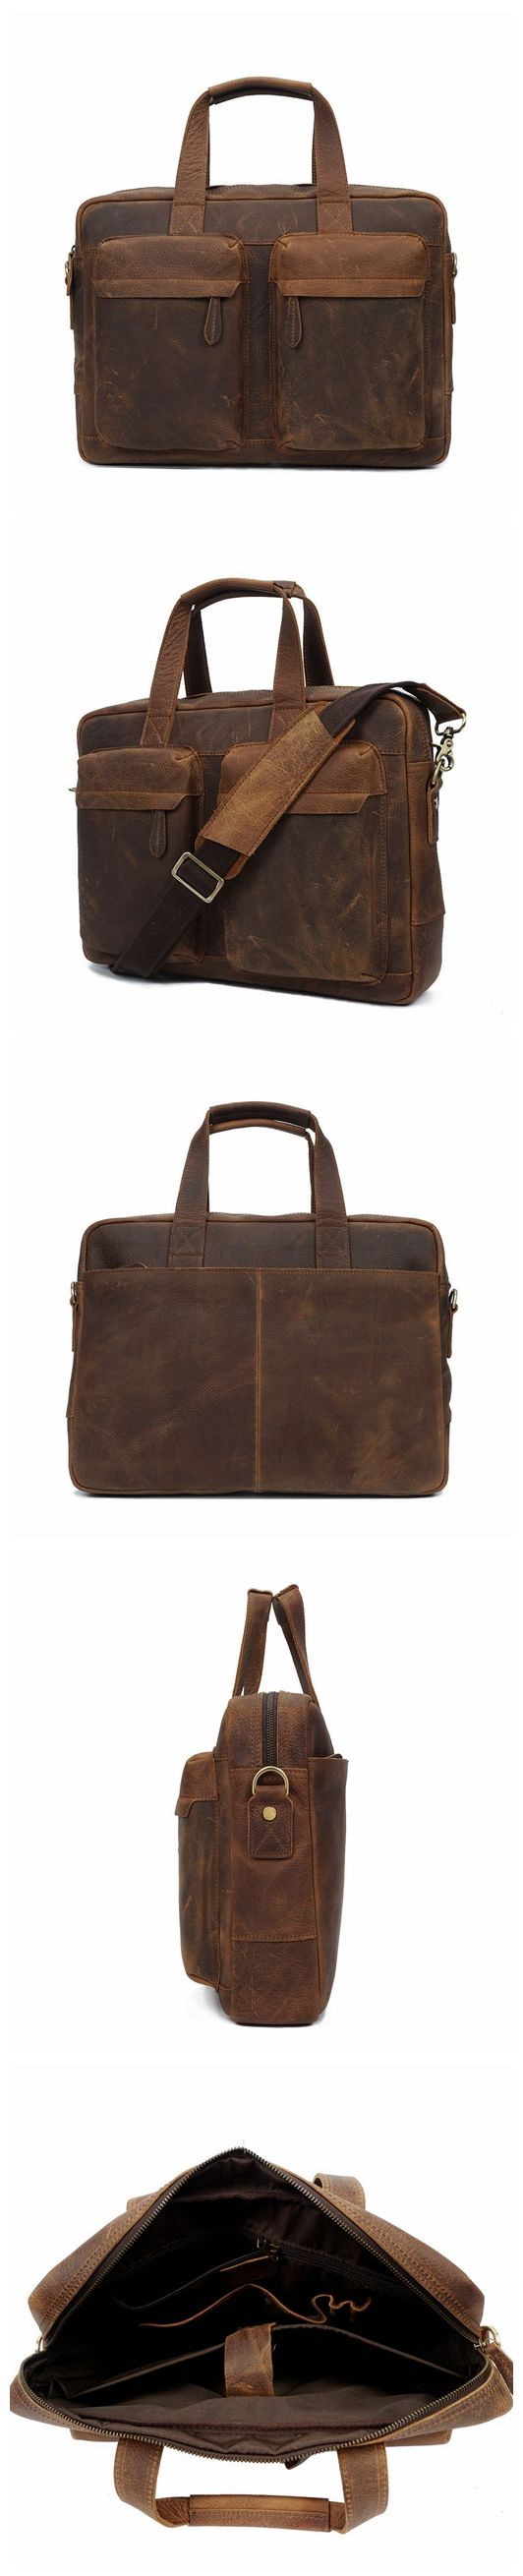 ROCKCOW Top Grade Handmade Mens Leather Briefcase Vintage Style Messenger Shoulder 15 inch Laptop Bag Case Handbag YD8046